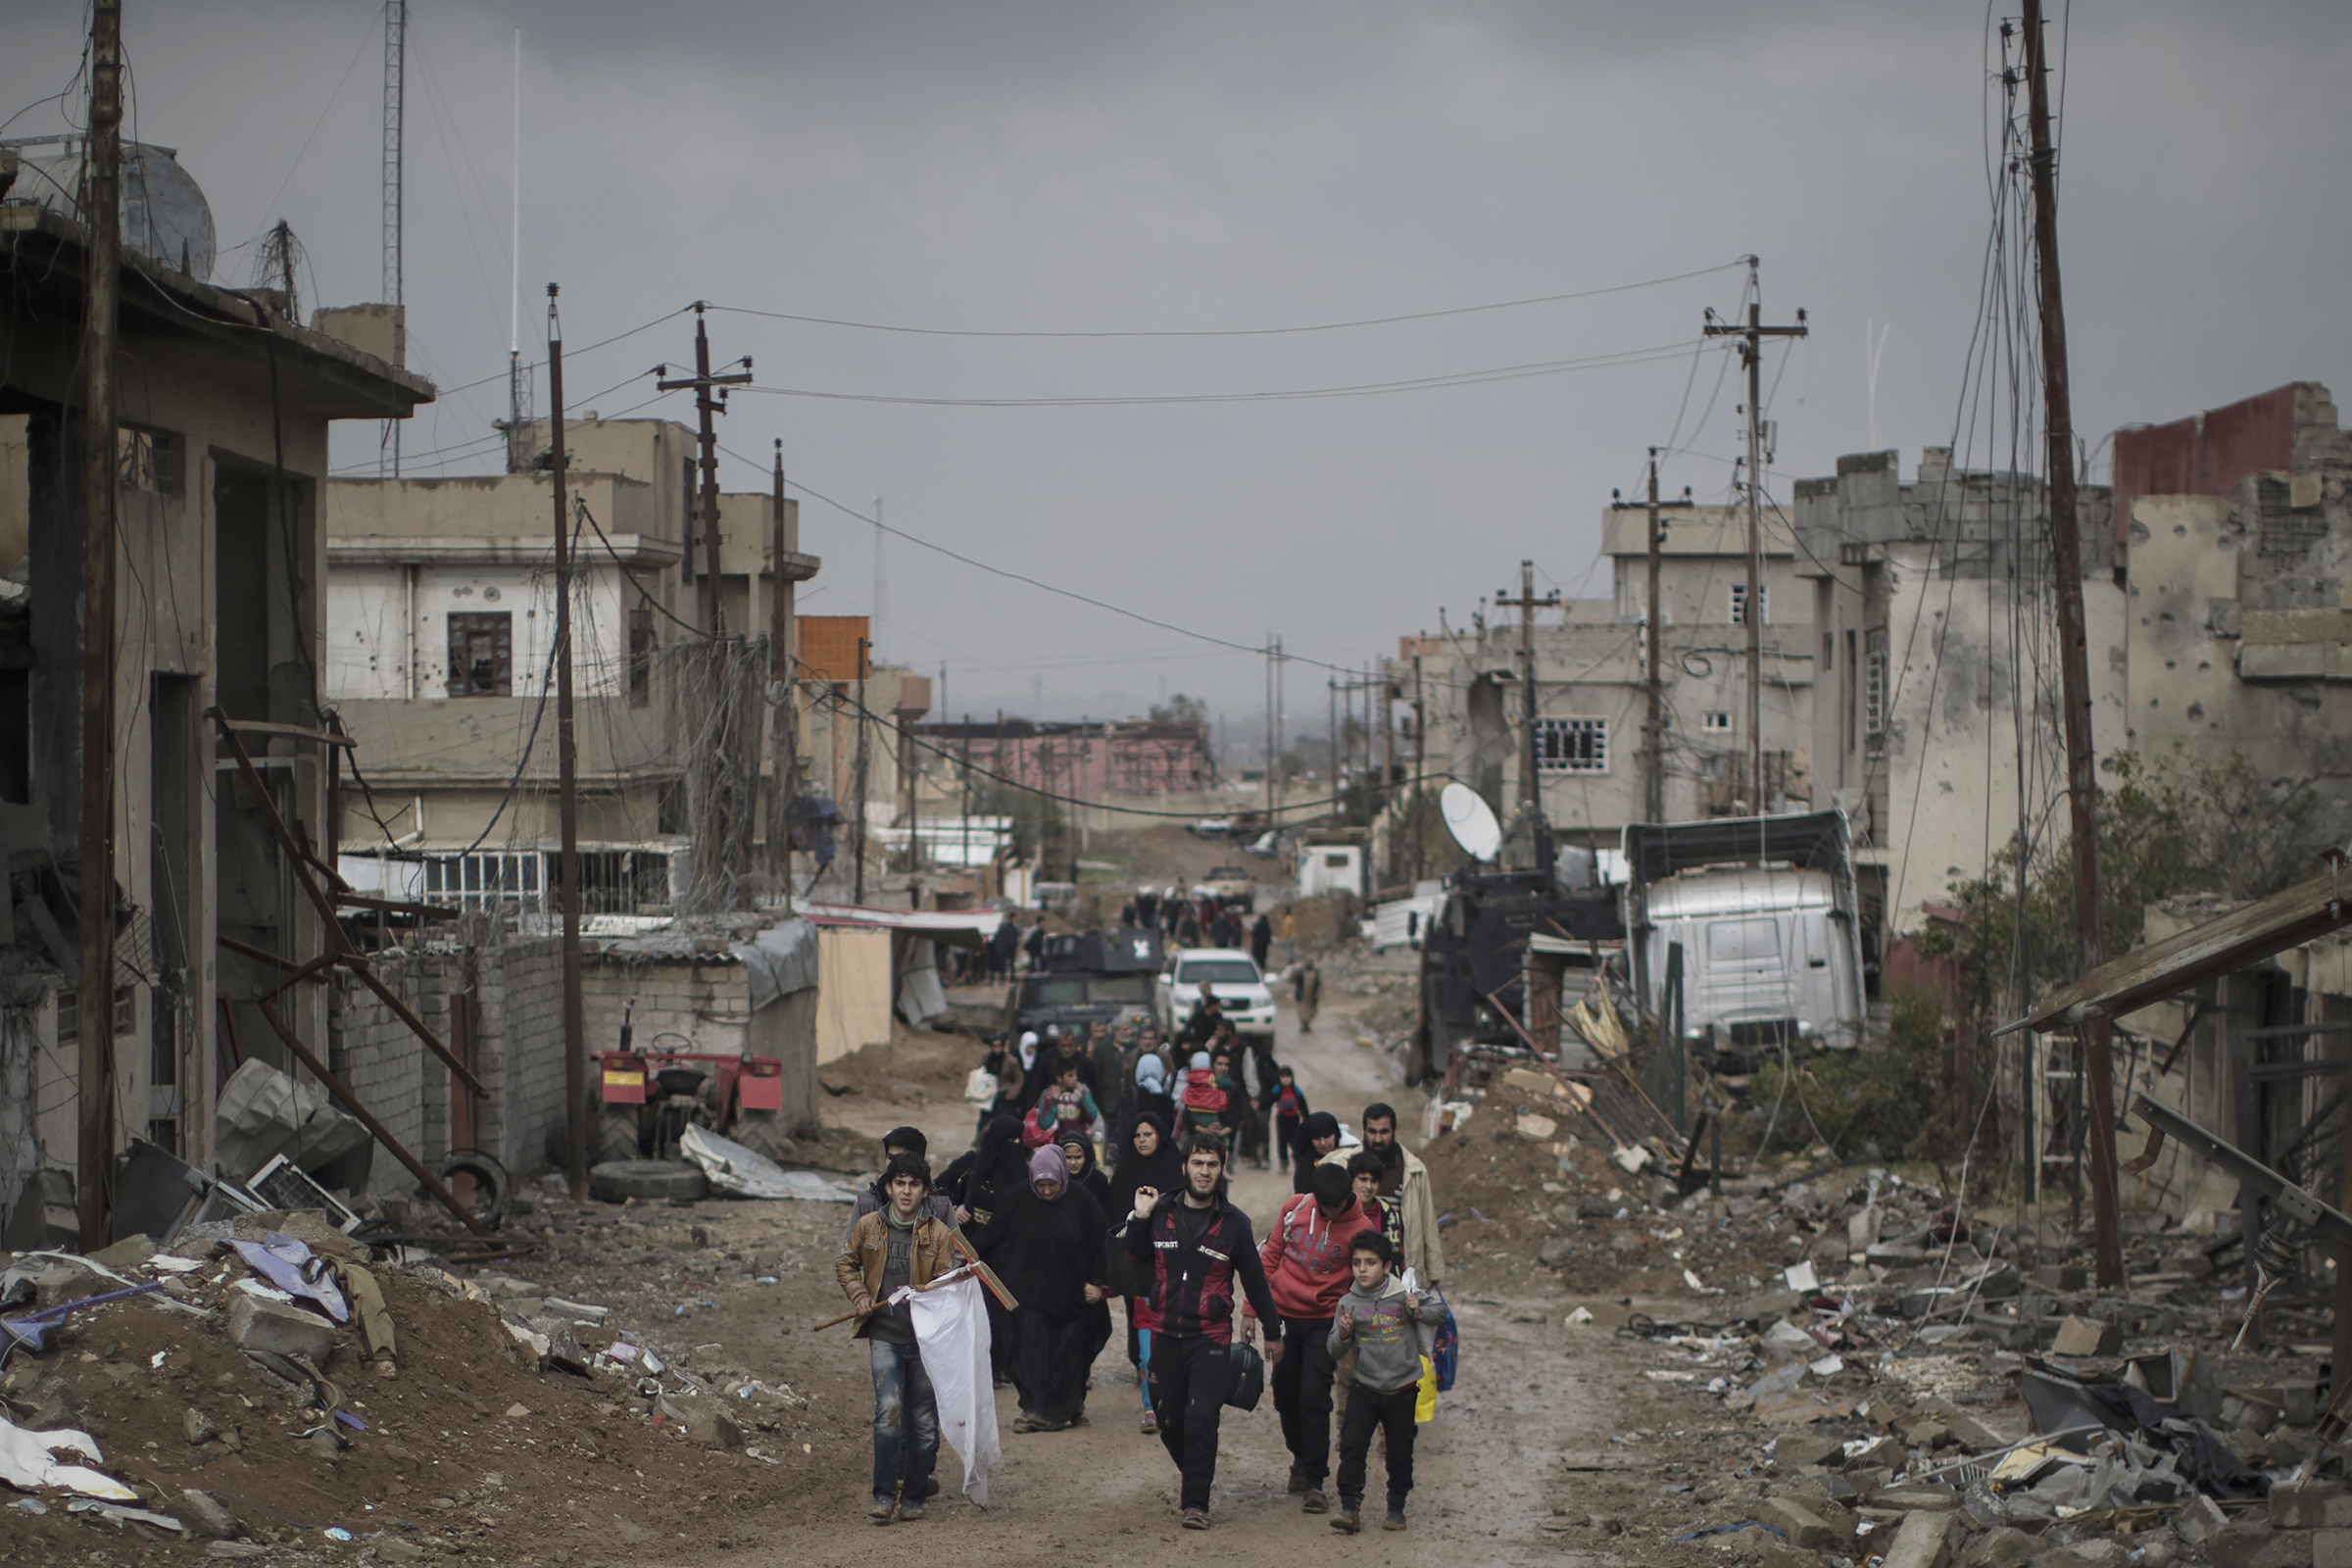 In this March 13, 2017 file photo, Iraqi civilians flee their homes during fighting between Iraqi security forces and Islamic State militants, on the western side of Mosul, Iraq. 3,351,132 _ The number of Iraqis across the country who remained displaced by violence in the fight against IS as of June 30, according to the U.N. migration agency. As Iraqi forces have retaken territory from the militants, more than 1,952,868 people have been able to return home. Of those still displaced, the vast majority are from Nineveh province, where Mosul is located. Some 700,000 are sheltering in camps, while the rest are living with extended family or in rented housing. AP Photo/Felipe Dana, File